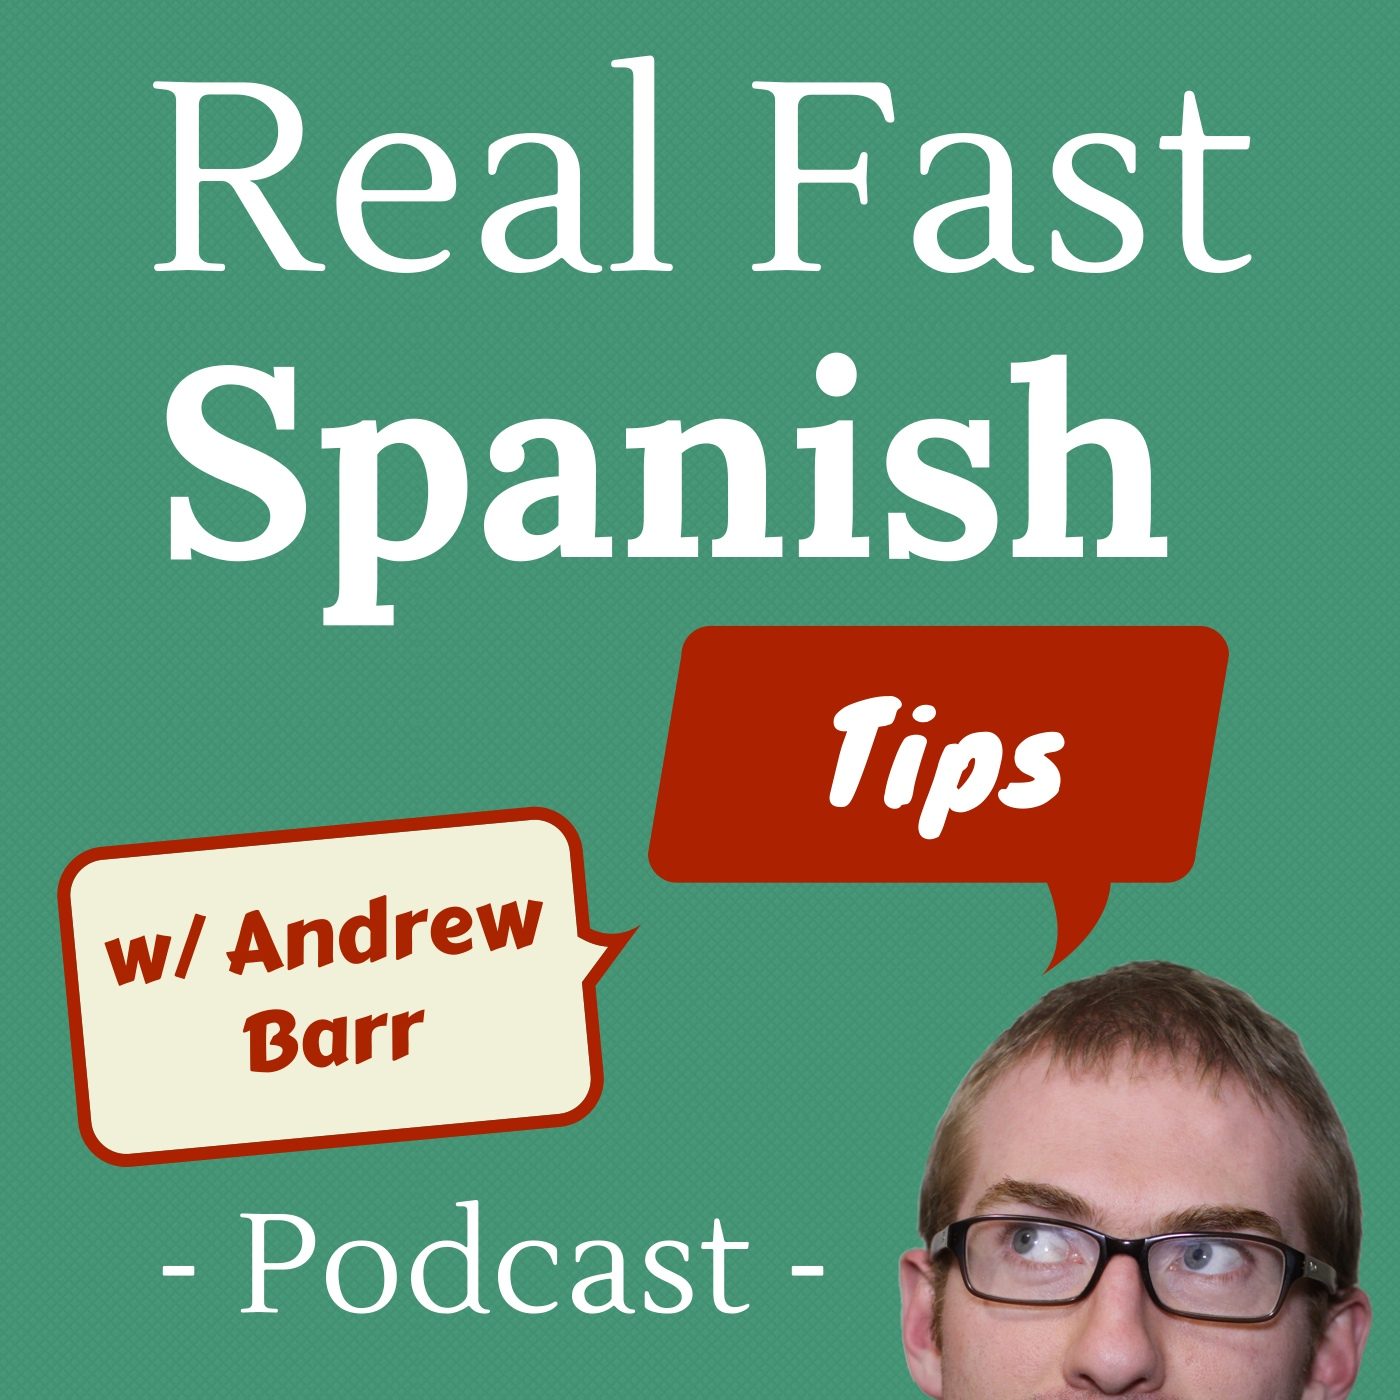 The Real Fast Spanish Tips Podcast